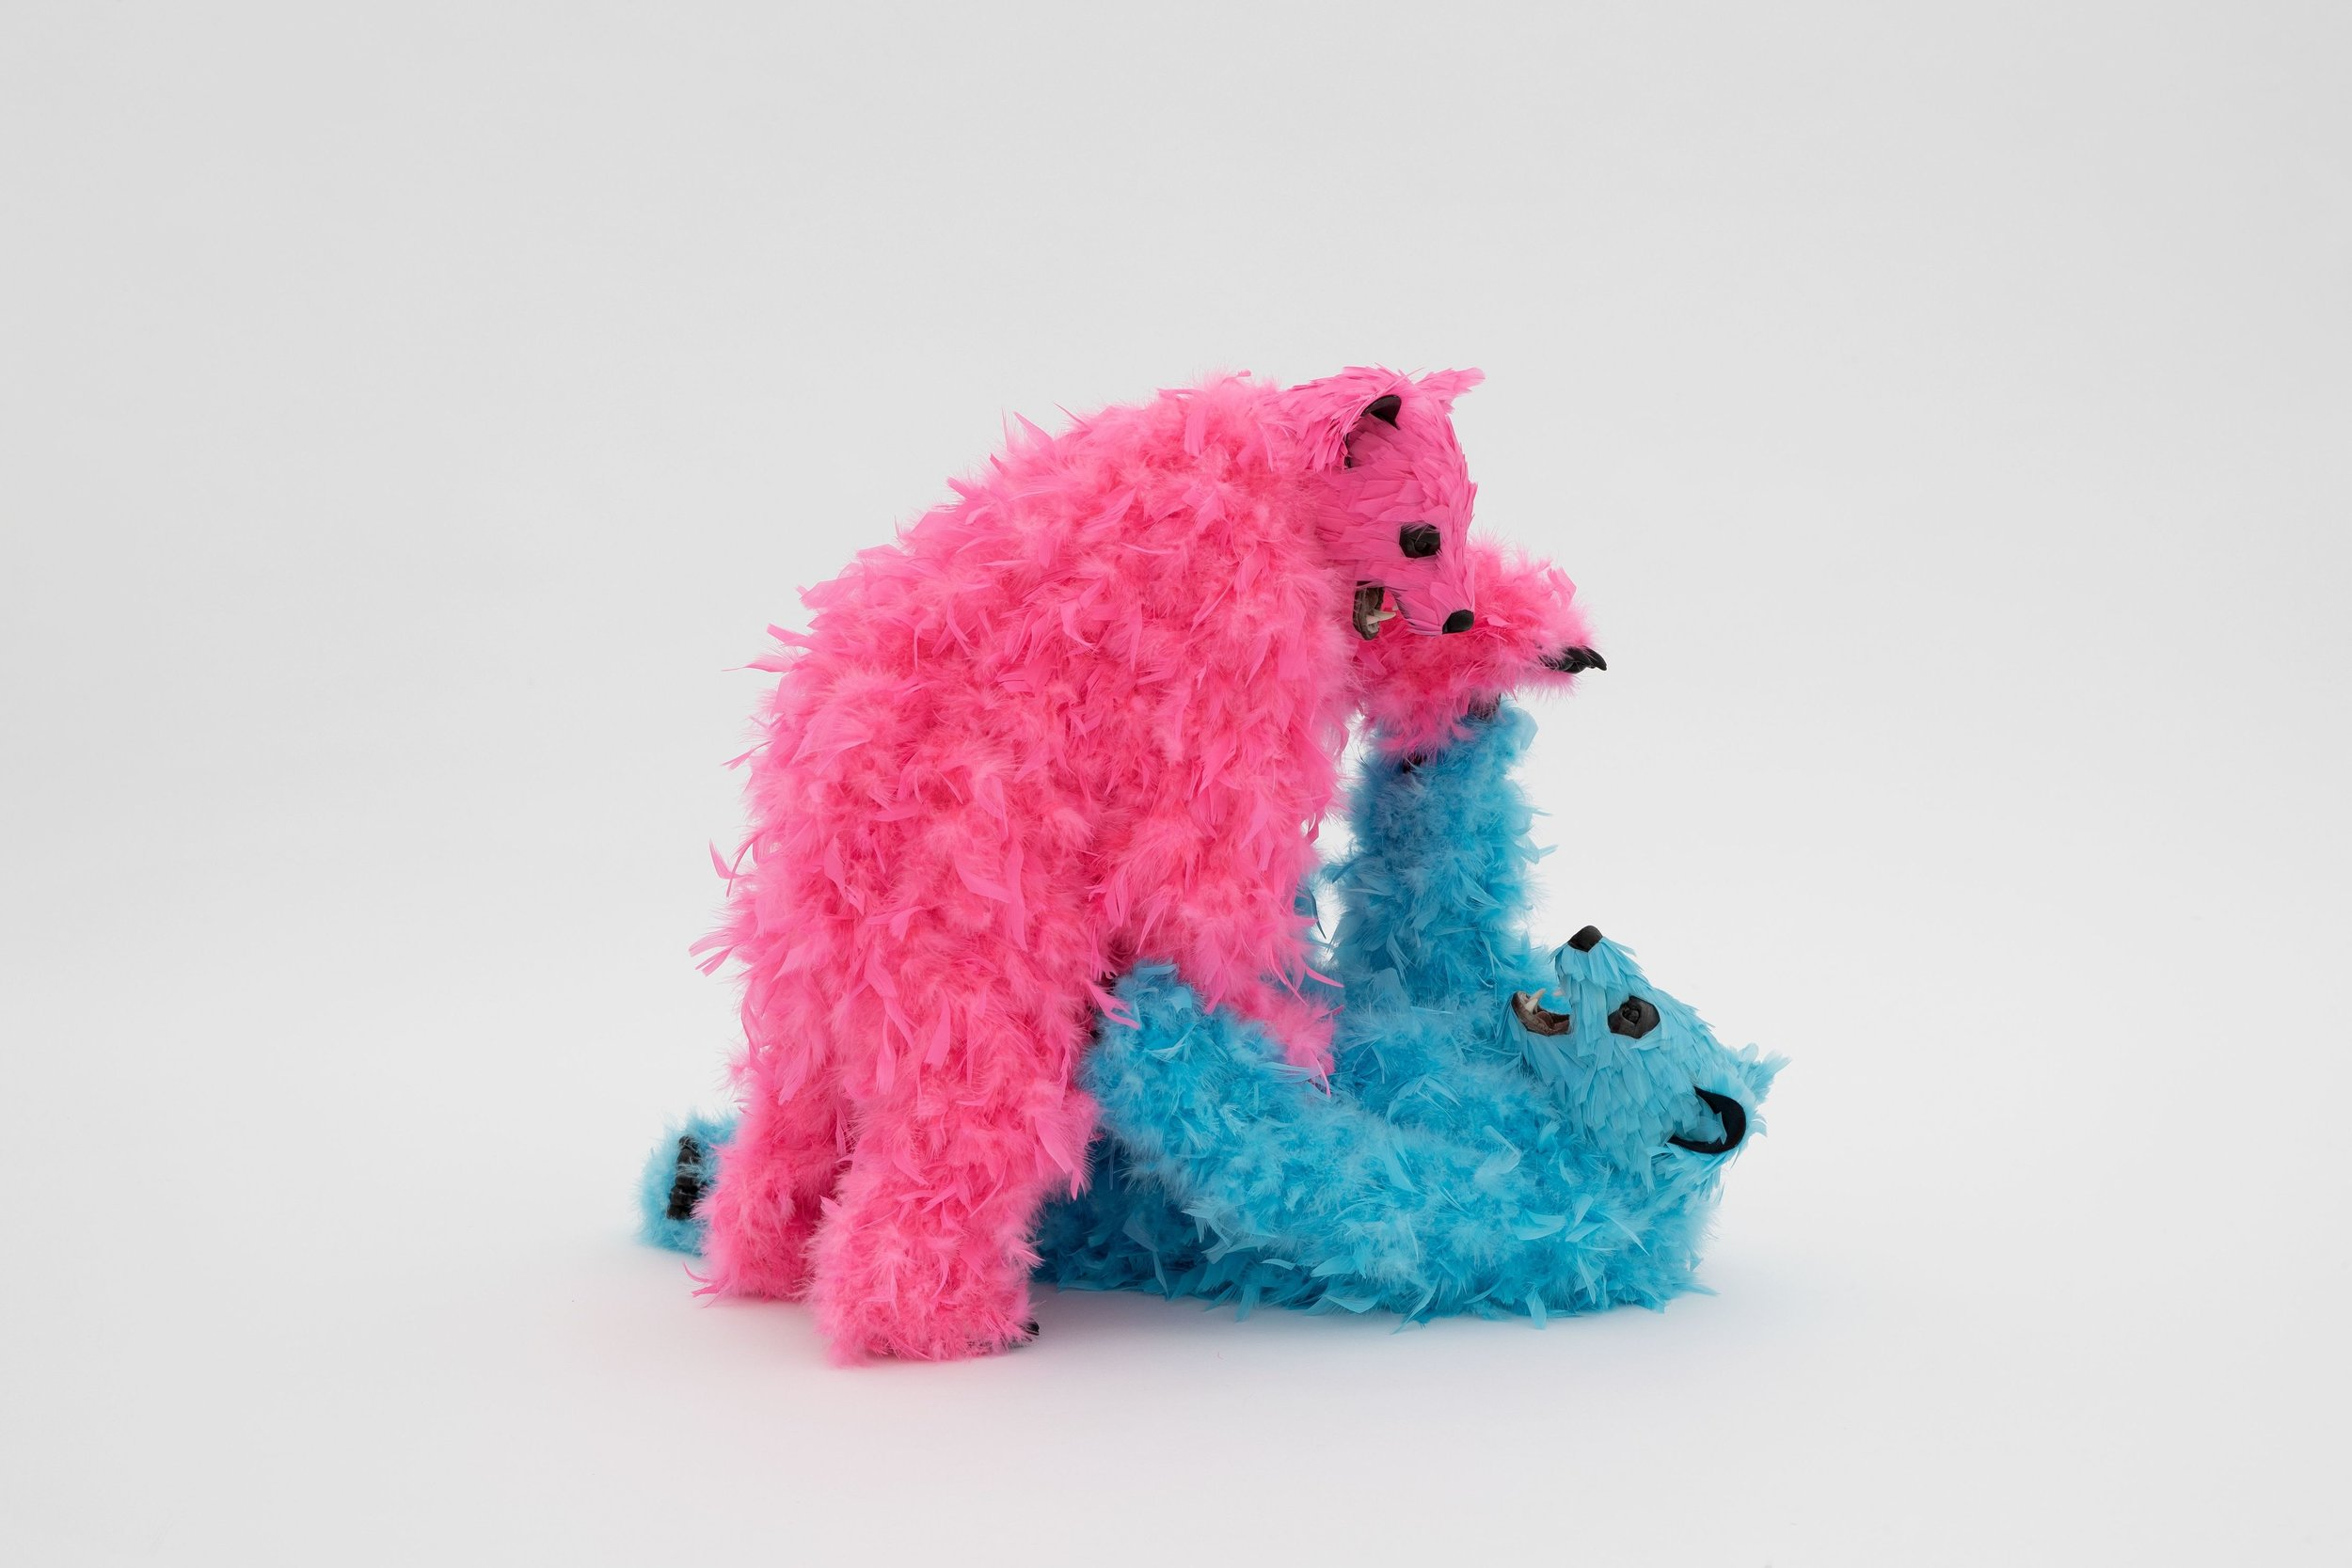 #6 - Paola Pivi   You drive me crazy, 2019   Urethane foam, plastic, feathers  Pink bear: 70 x 60 x 40 cm | 27 9/16 x 23 5/8 x 15 3/4 in  Blue bear: 75 x 60 x 40 cm | 29 1/2 x 23 5/8 x 15 3/4 in  Photo: Guillaume Ziccarelli  Courtesy of the artist & Perrotin